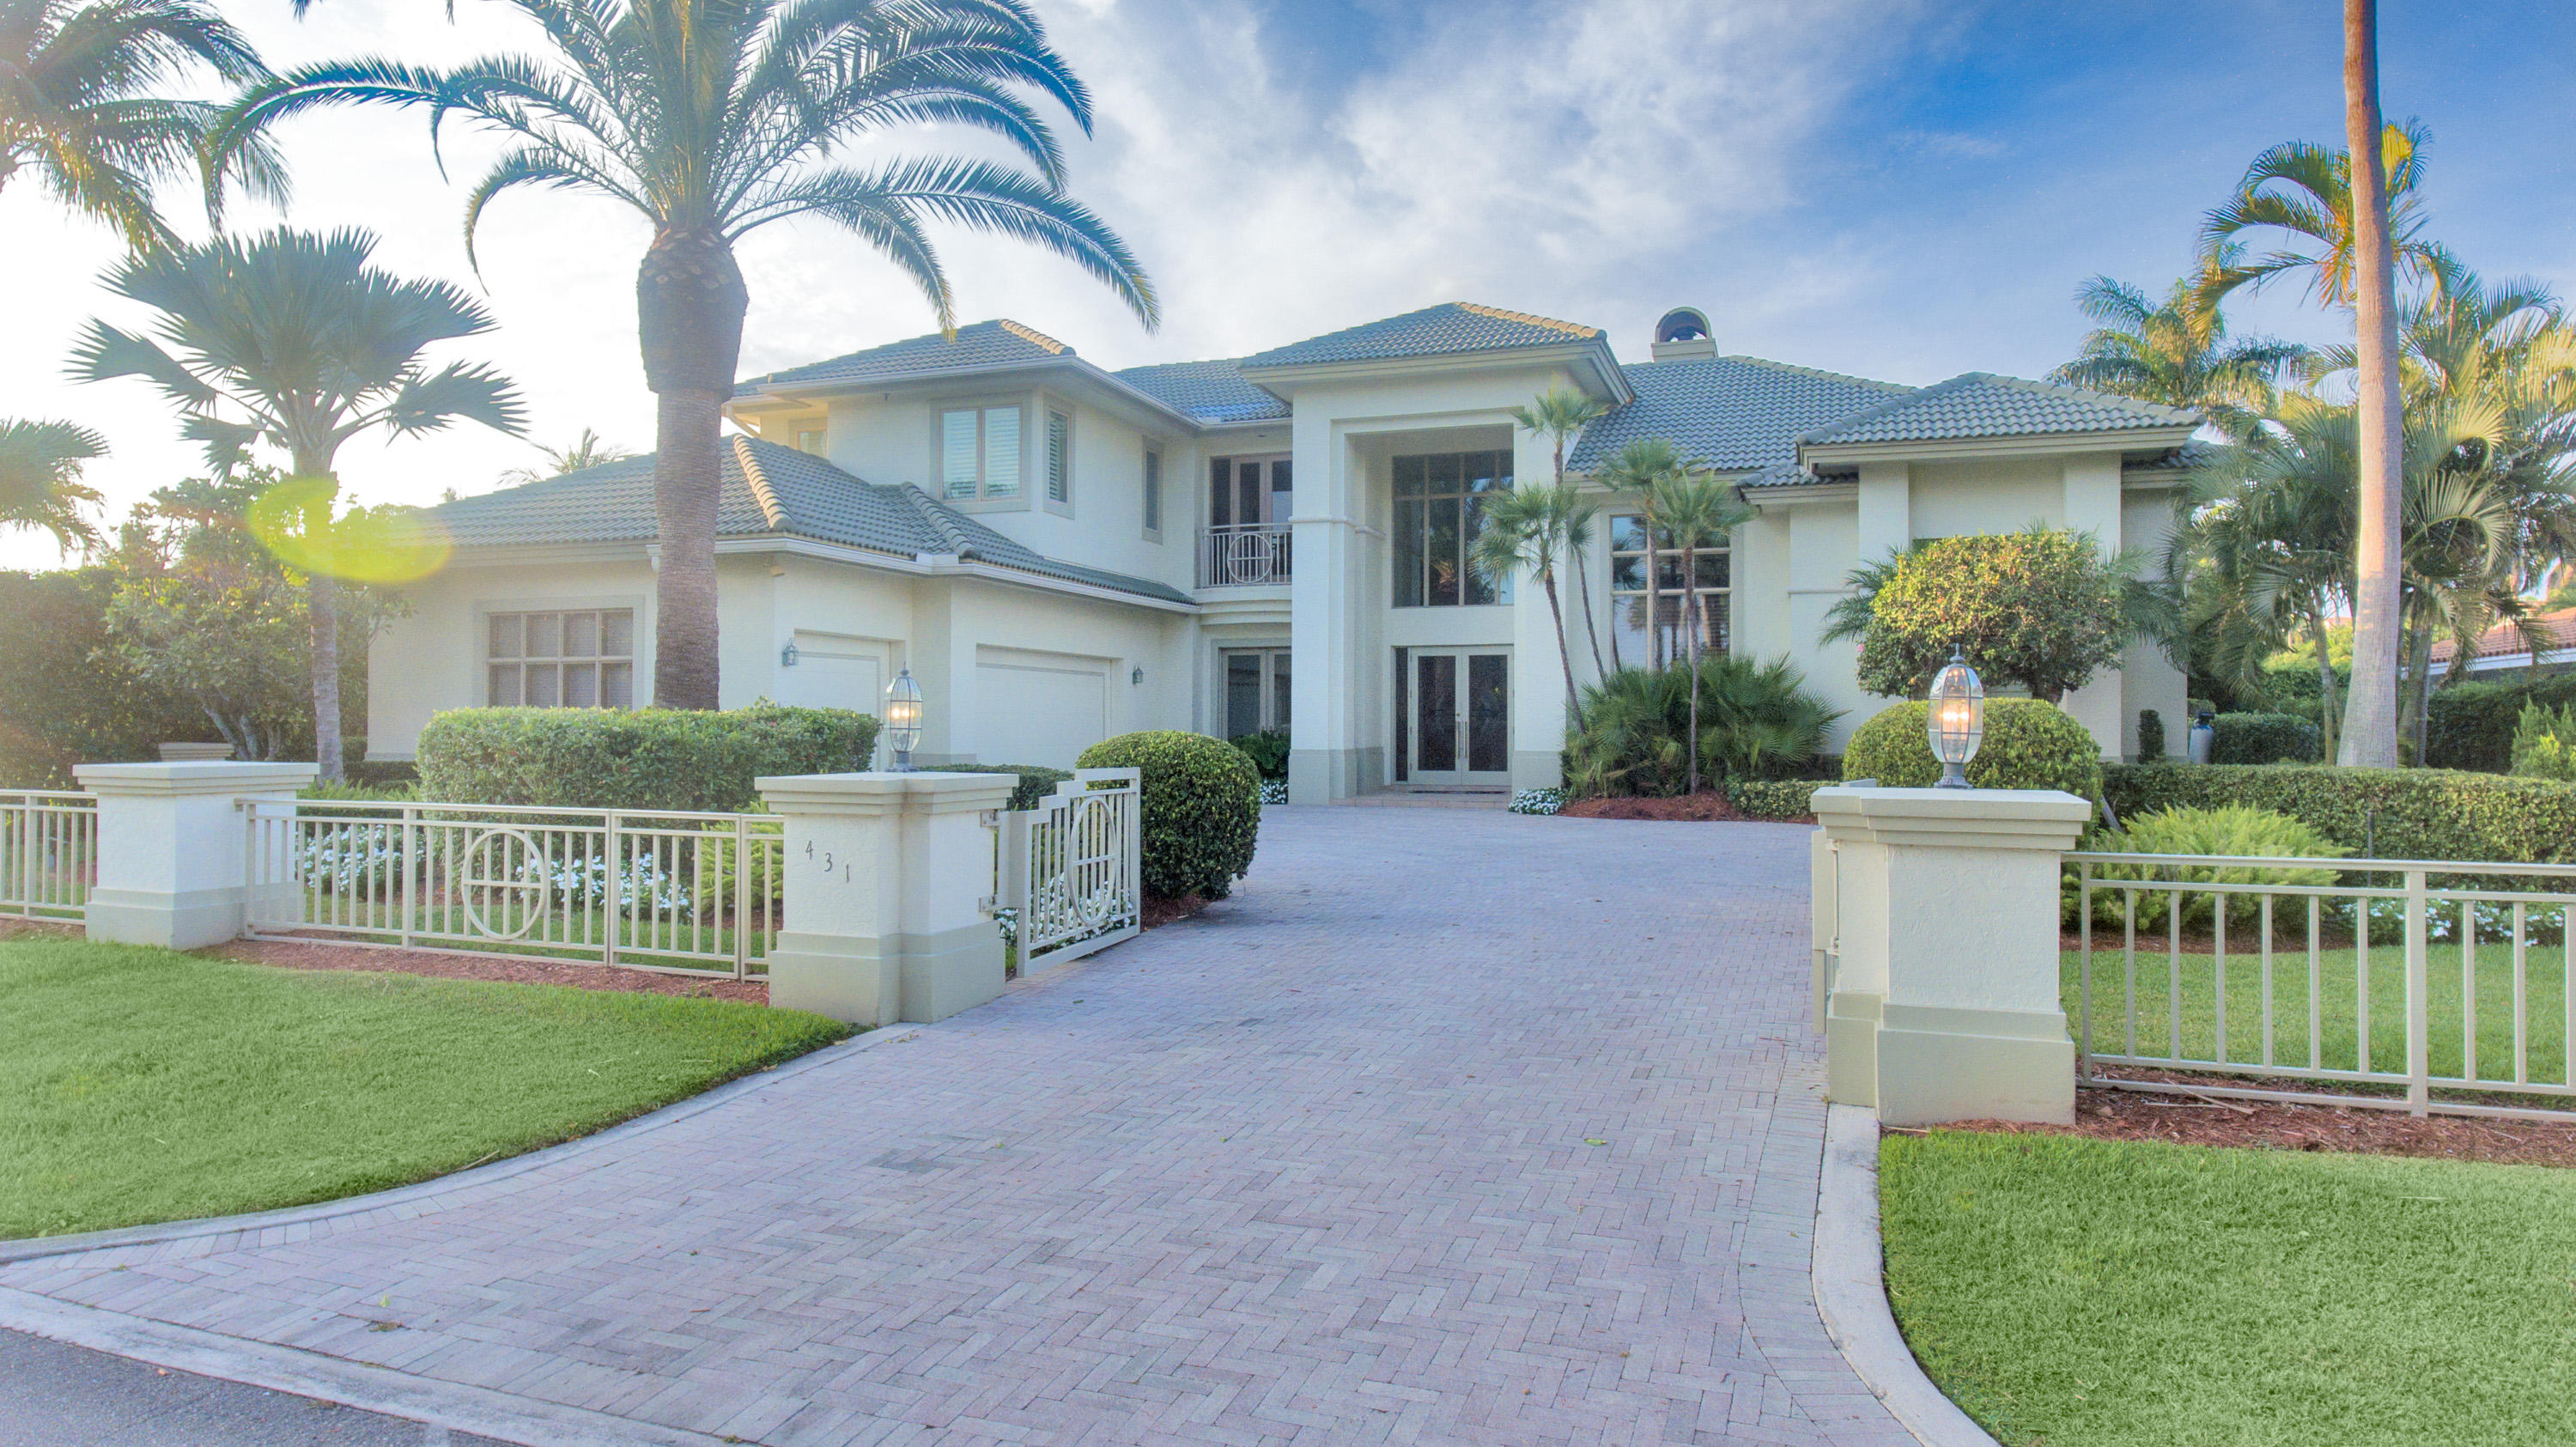 431 Thatch Palm Drive, Boca Raton, Florida 33432, 4 Bedrooms Bedrooms, ,4.2 BathroomsBathrooms,Single Family,For Sale,ROYAL PALM Y & C C,Thatch Palm,RX-10526217